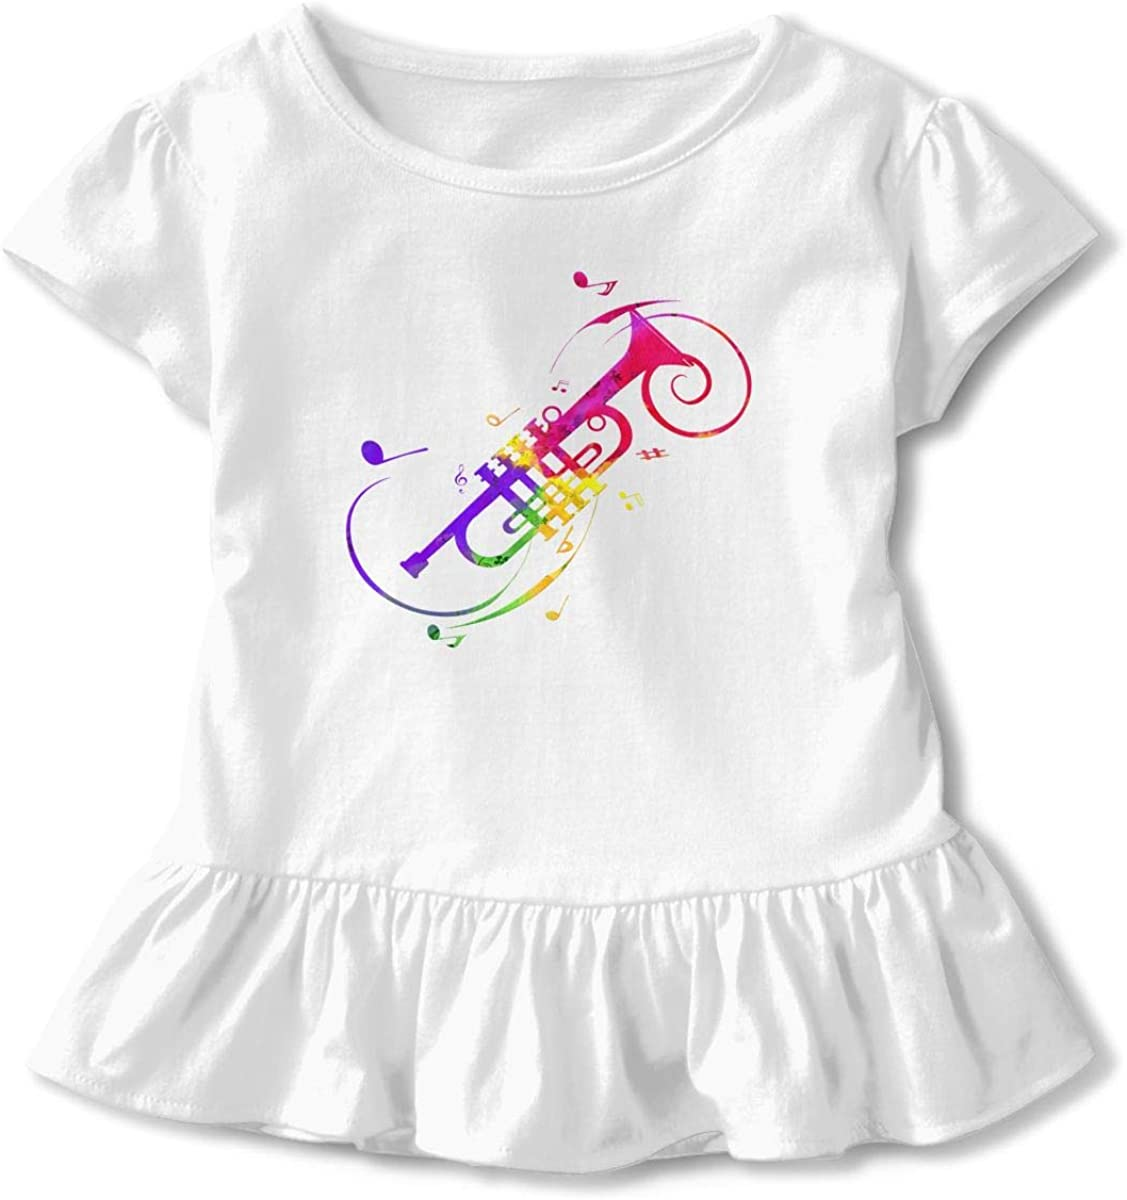 Cheng Jian Bo Trumpet Player Music Toddler Girls T Shirt Kids Cotton Short Sleeve Ruffle Tee